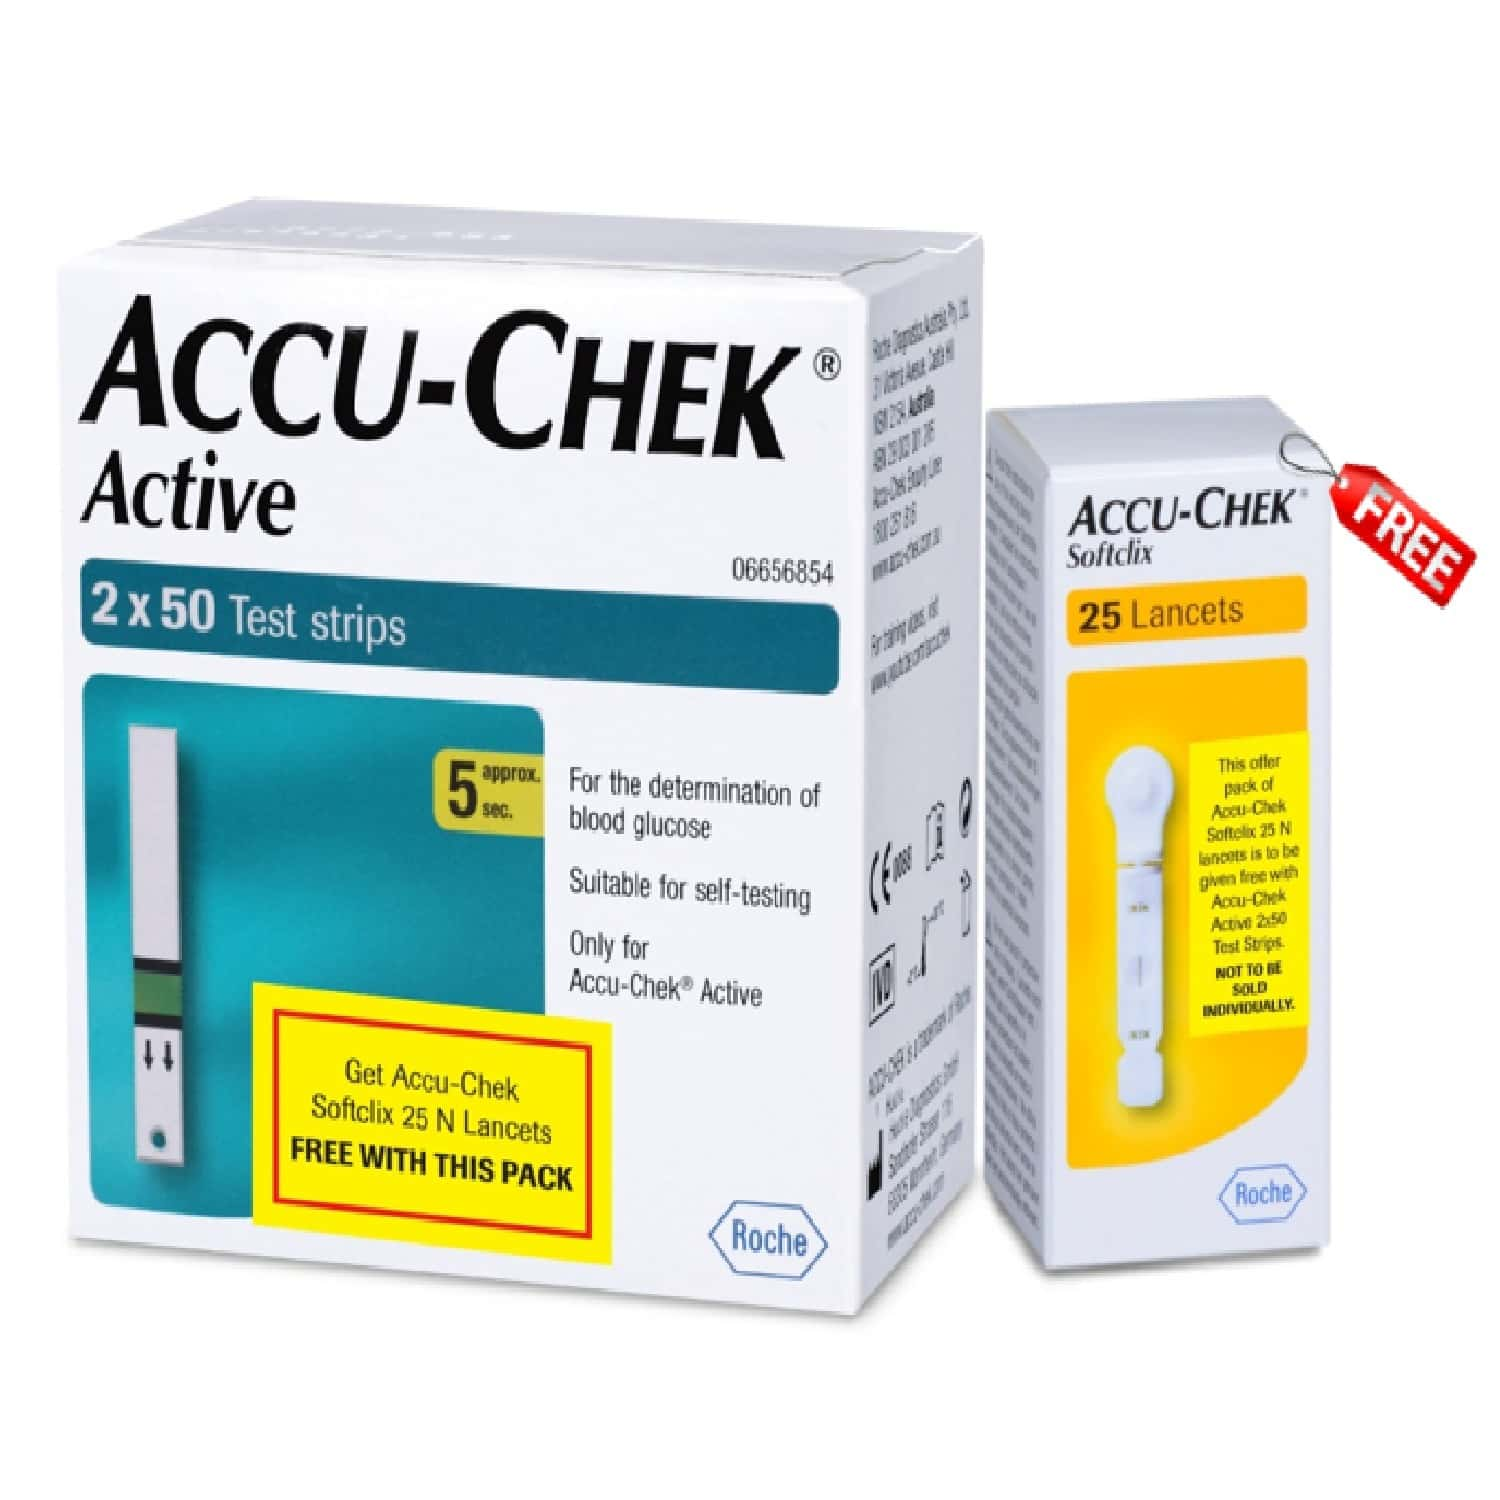 Accu-chek Active 100 Strips (50x2) With Free 25 Lancets